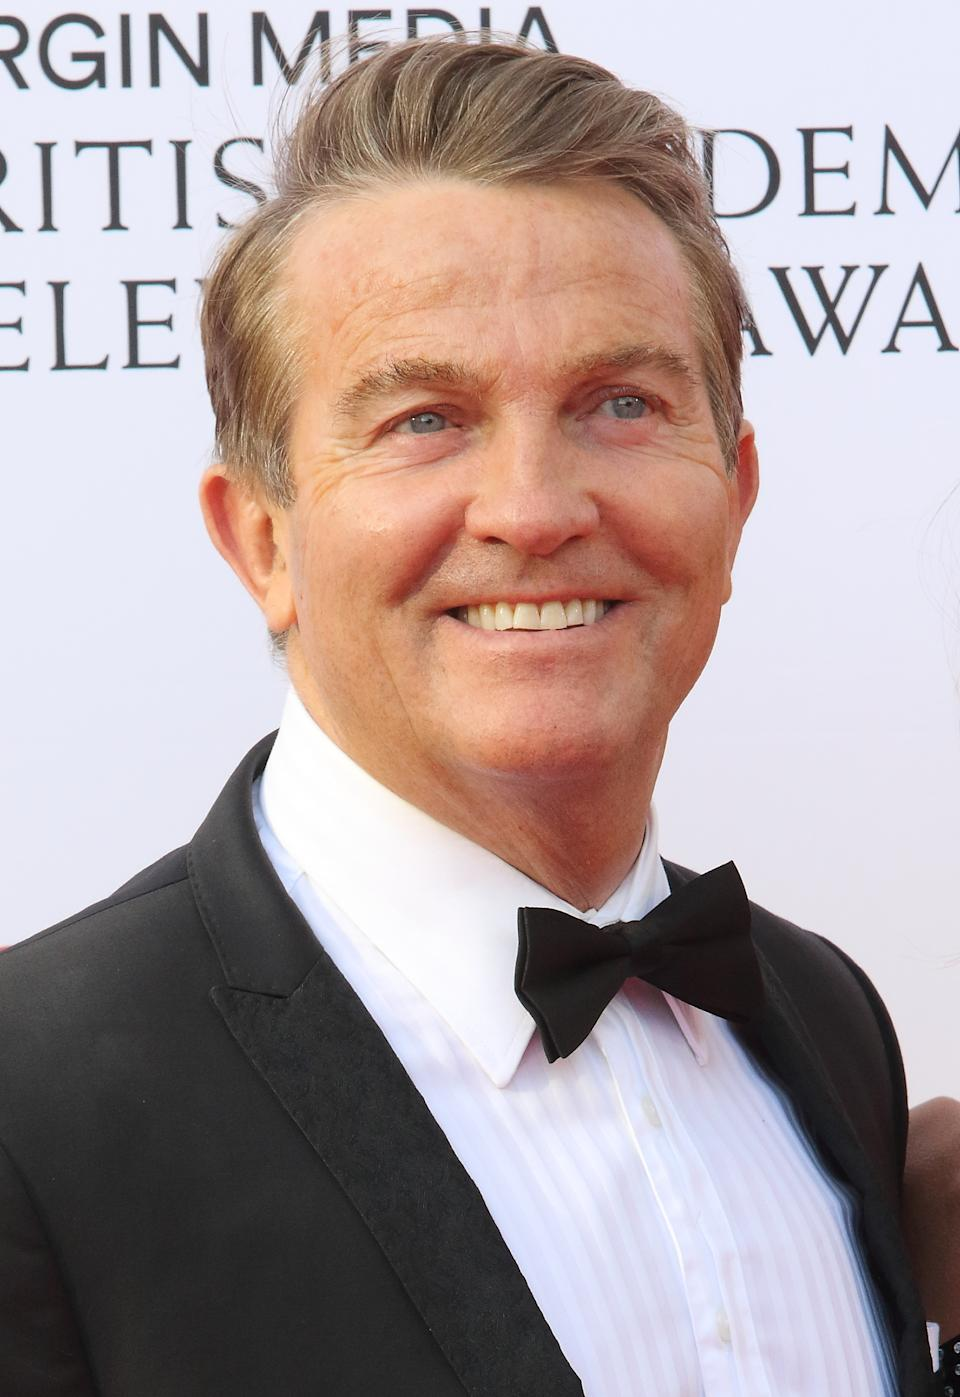 Bradley Walsh seen on the red carpet during the Virgin Media BAFTA Television Awards 2019 at The Royal Festival Hal in London. (Photo by Keith Mayhew / SOPA Images/Sipa USA)